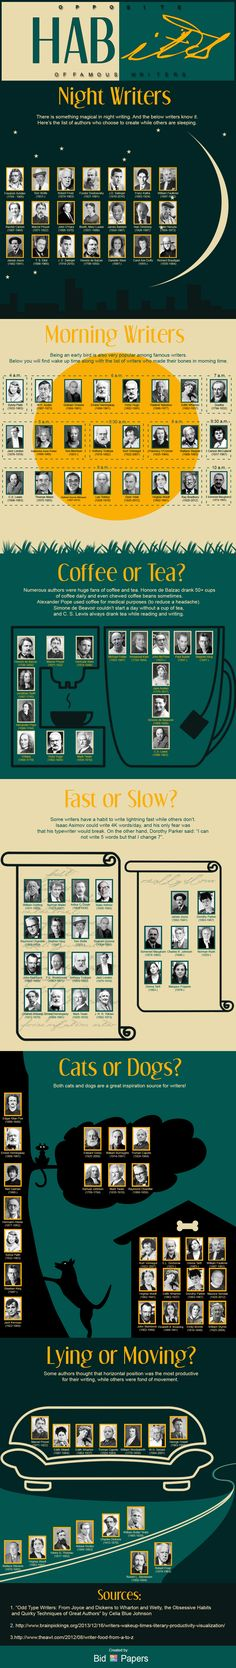 Opposite Habits of Famous Writers